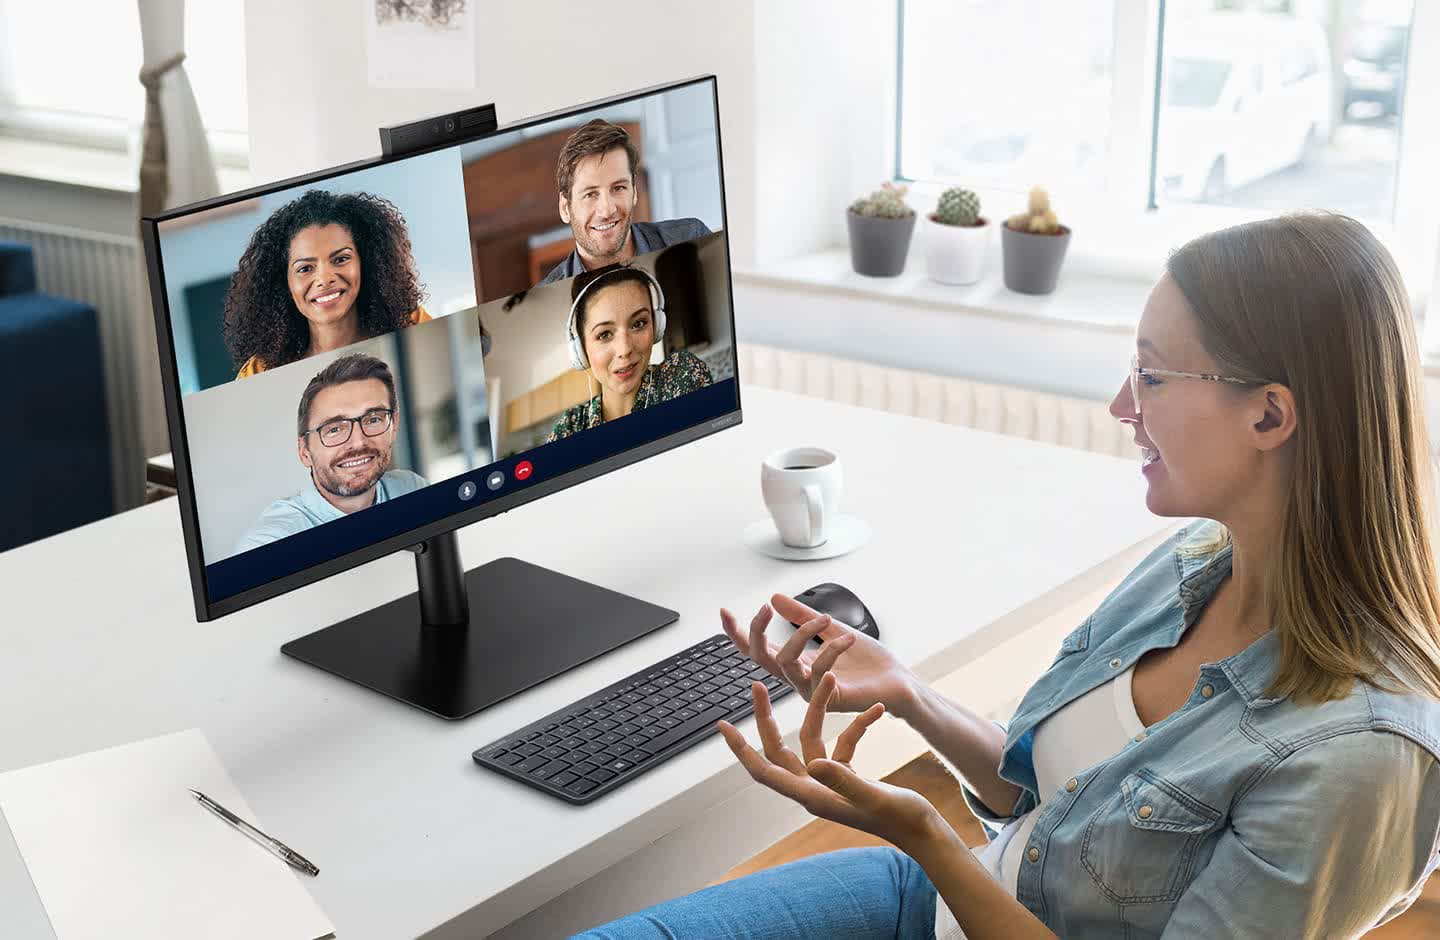 Samsung reveals new WFH-focused monitor with built-in webcam and Windows Hello support